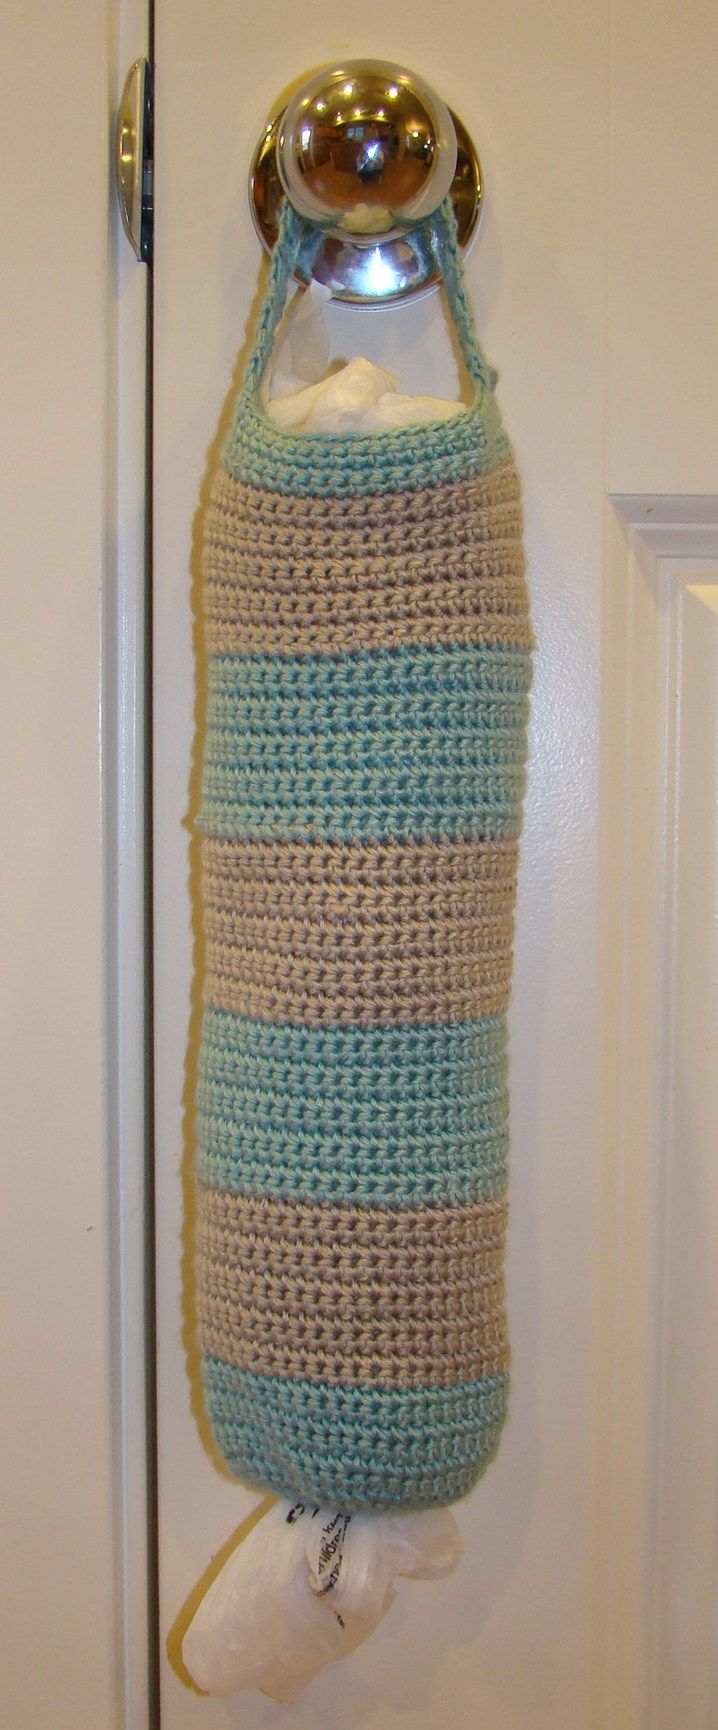 Easy cute and useful this grocery bag holder can be as long as crochet easy cute and useful this grocery bag holder can as long as you need it is made from spa yarn size but will work with any yarn or colors you bankloansurffo Image collections